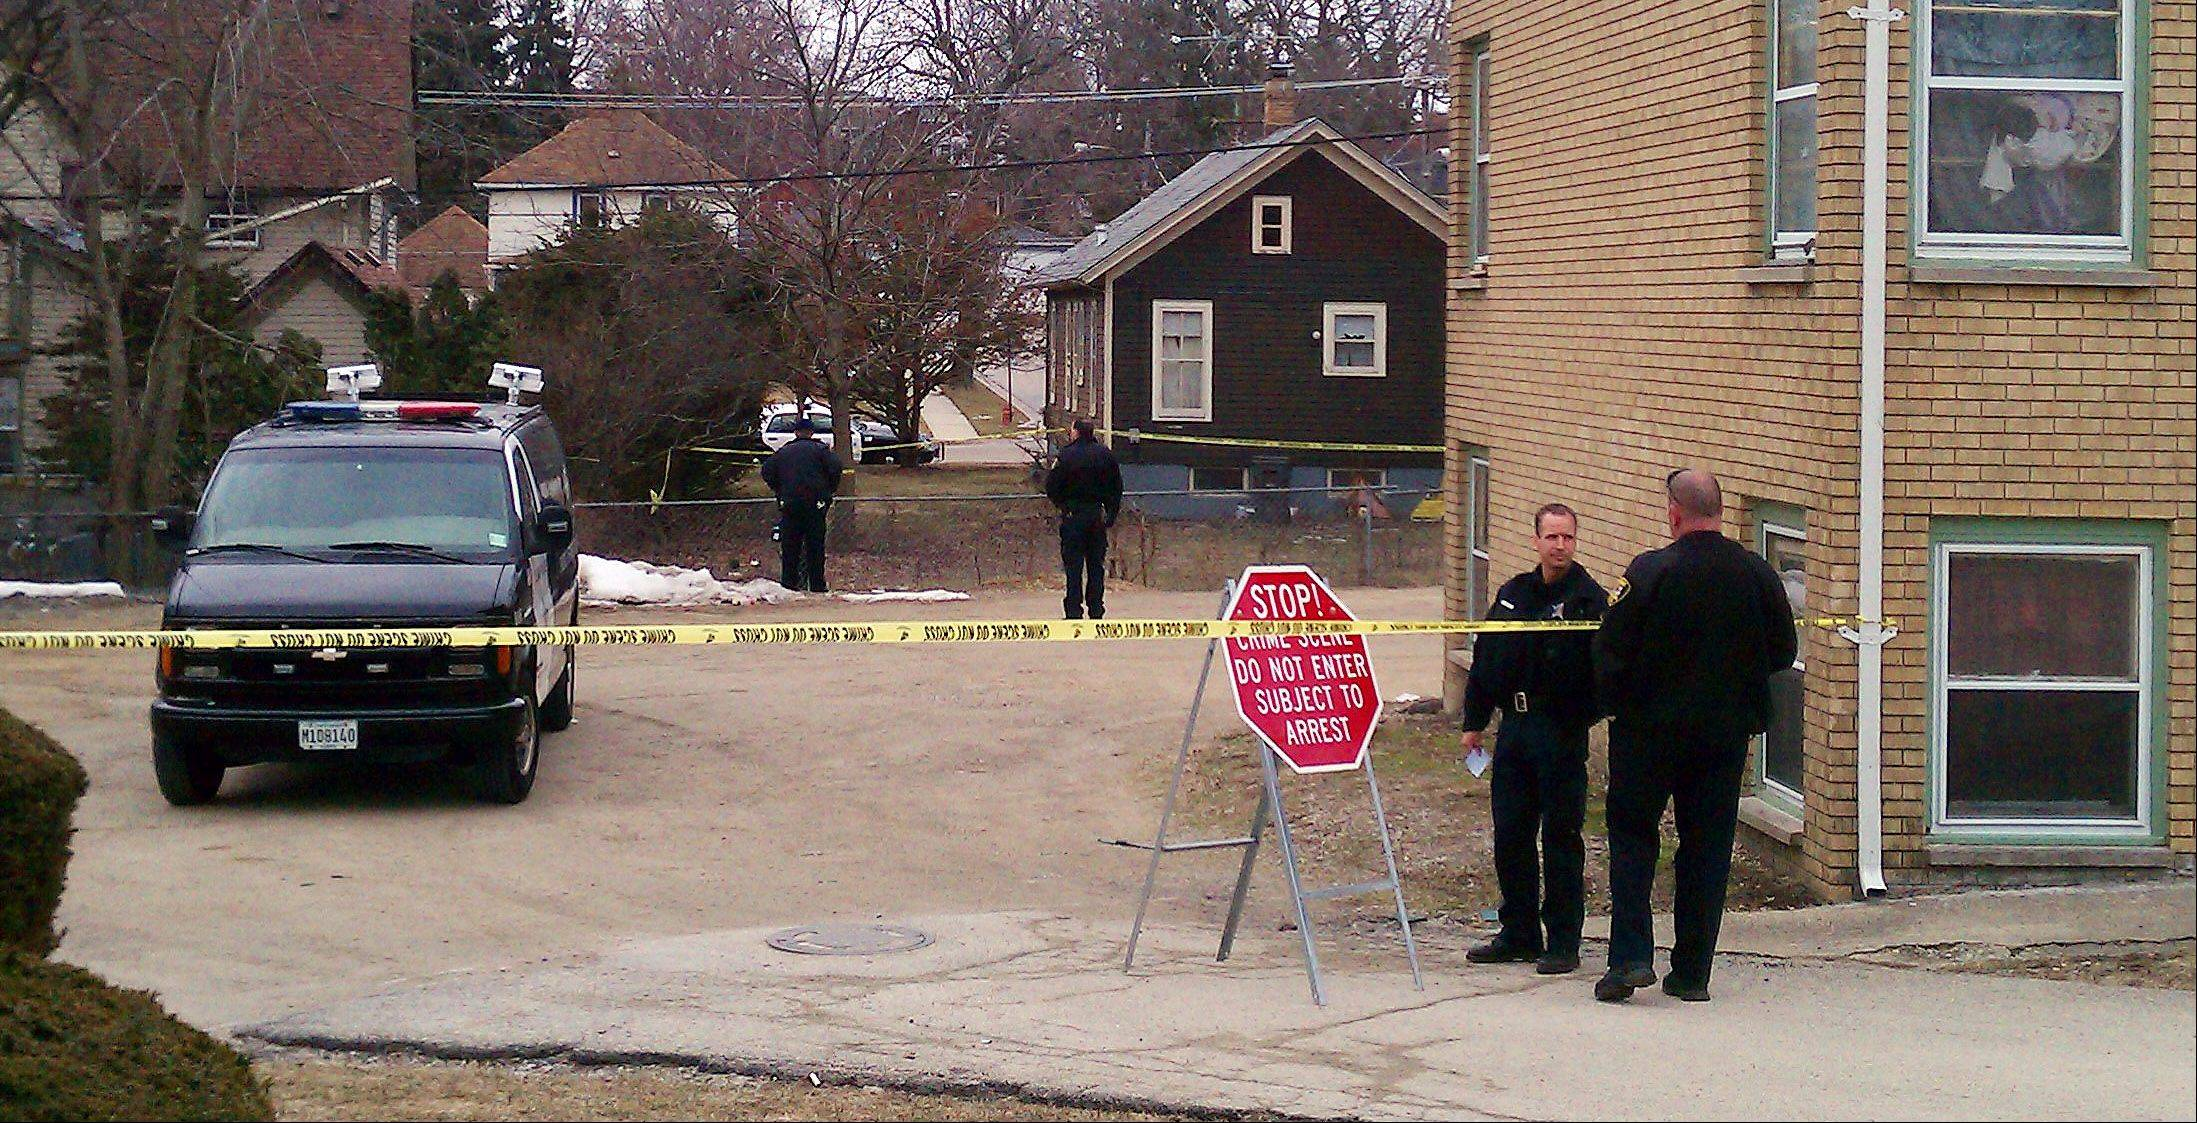 Elgin police continued Wednesday to investigate a homicide they said occurred about 9:25 p.m. Tuesday in the 200 block of Silver Court.